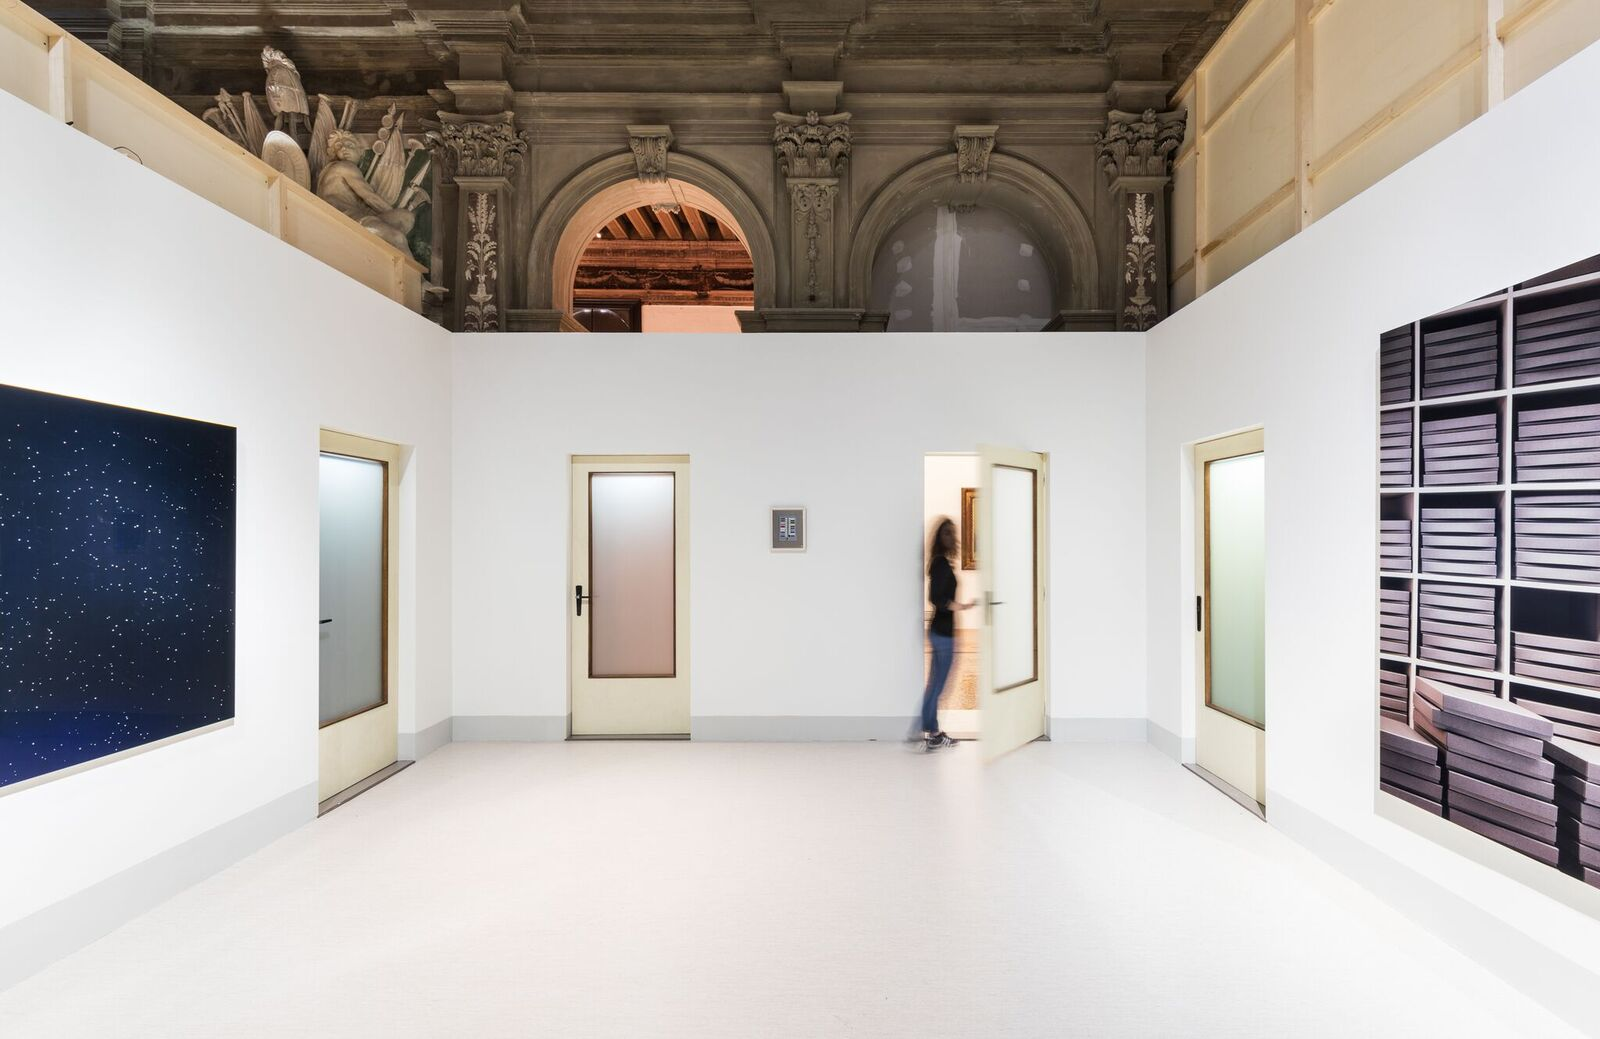 Exhibition View, from left to right: Thomas Demand, Konstellation (Constellation), 2000, Anna Viebrock, Doors, 2017, Thomas Demand, Archiv (Archive), 1995, (Foto Delfino Sisto Legnani und Marco Cappelletti Courtesy Fondazione Prada)